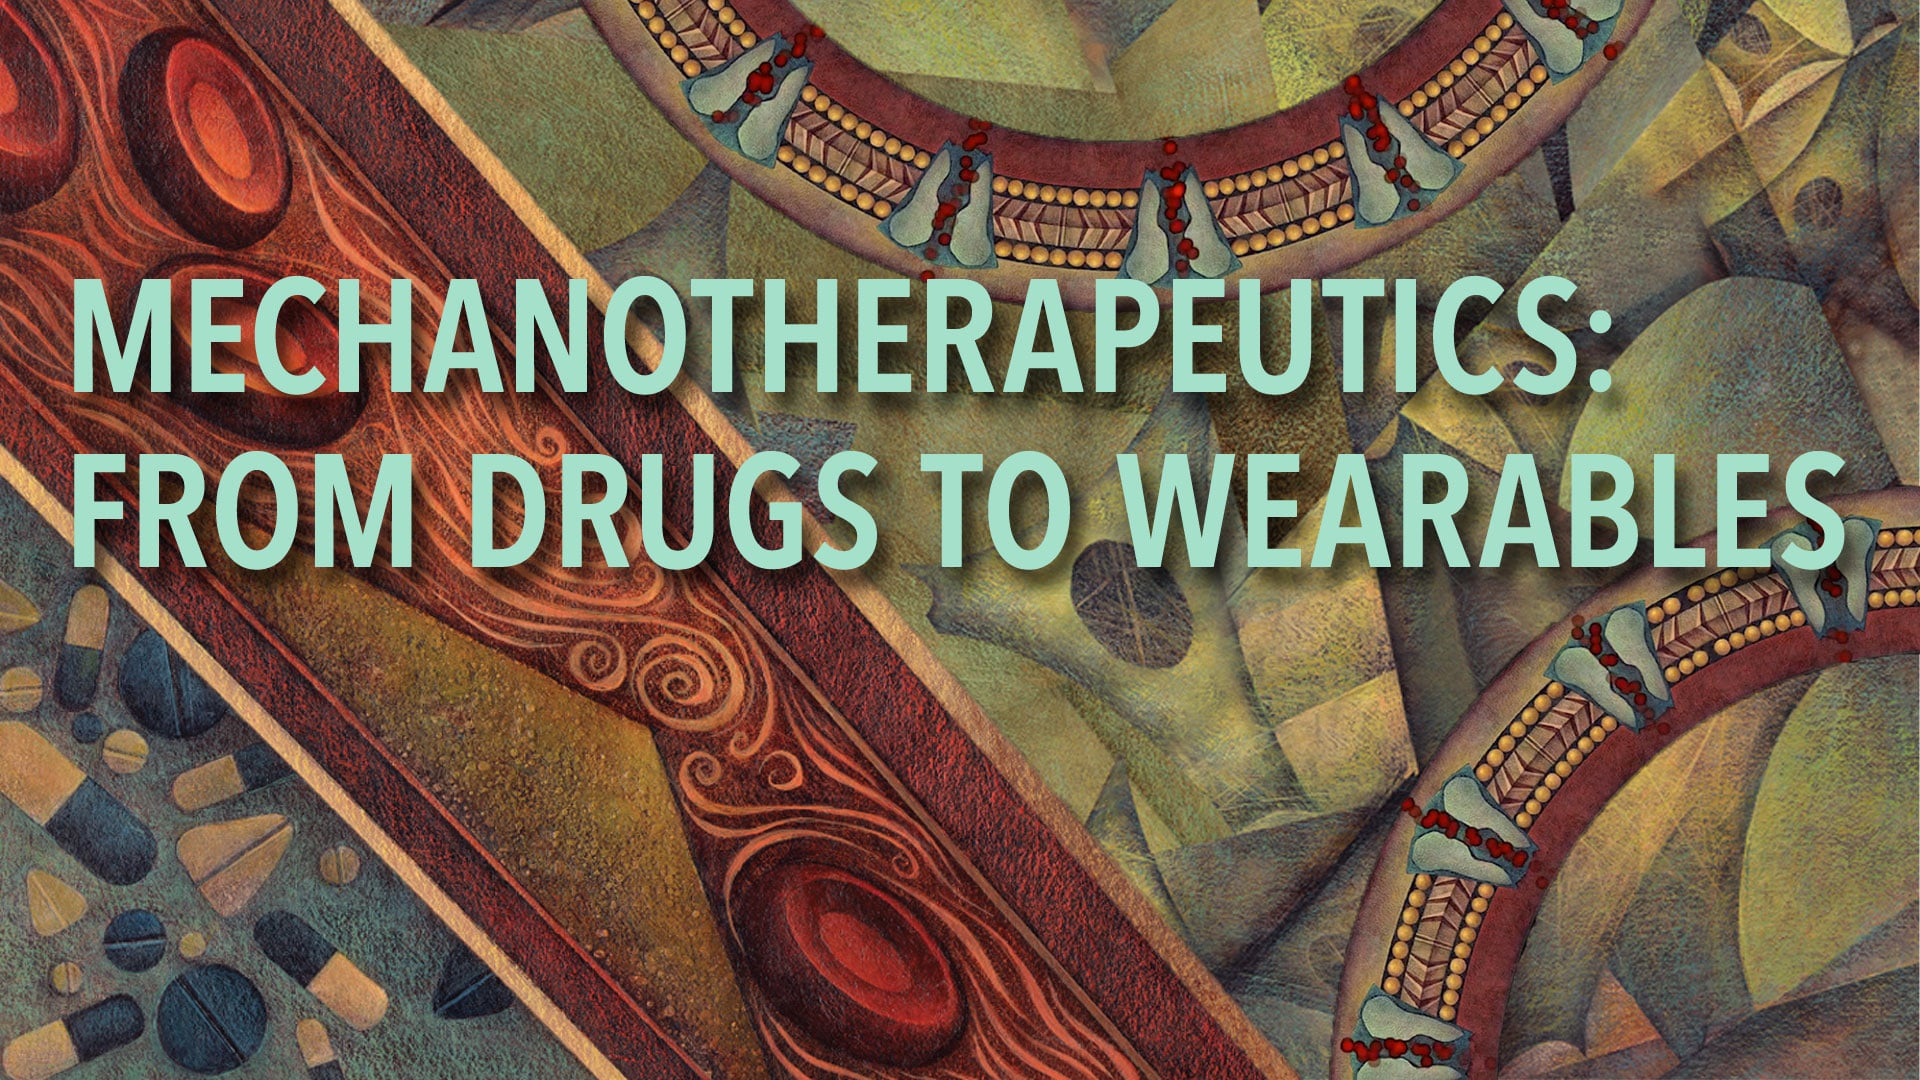 Mechanotherapeutics: From Drugs to Wearables